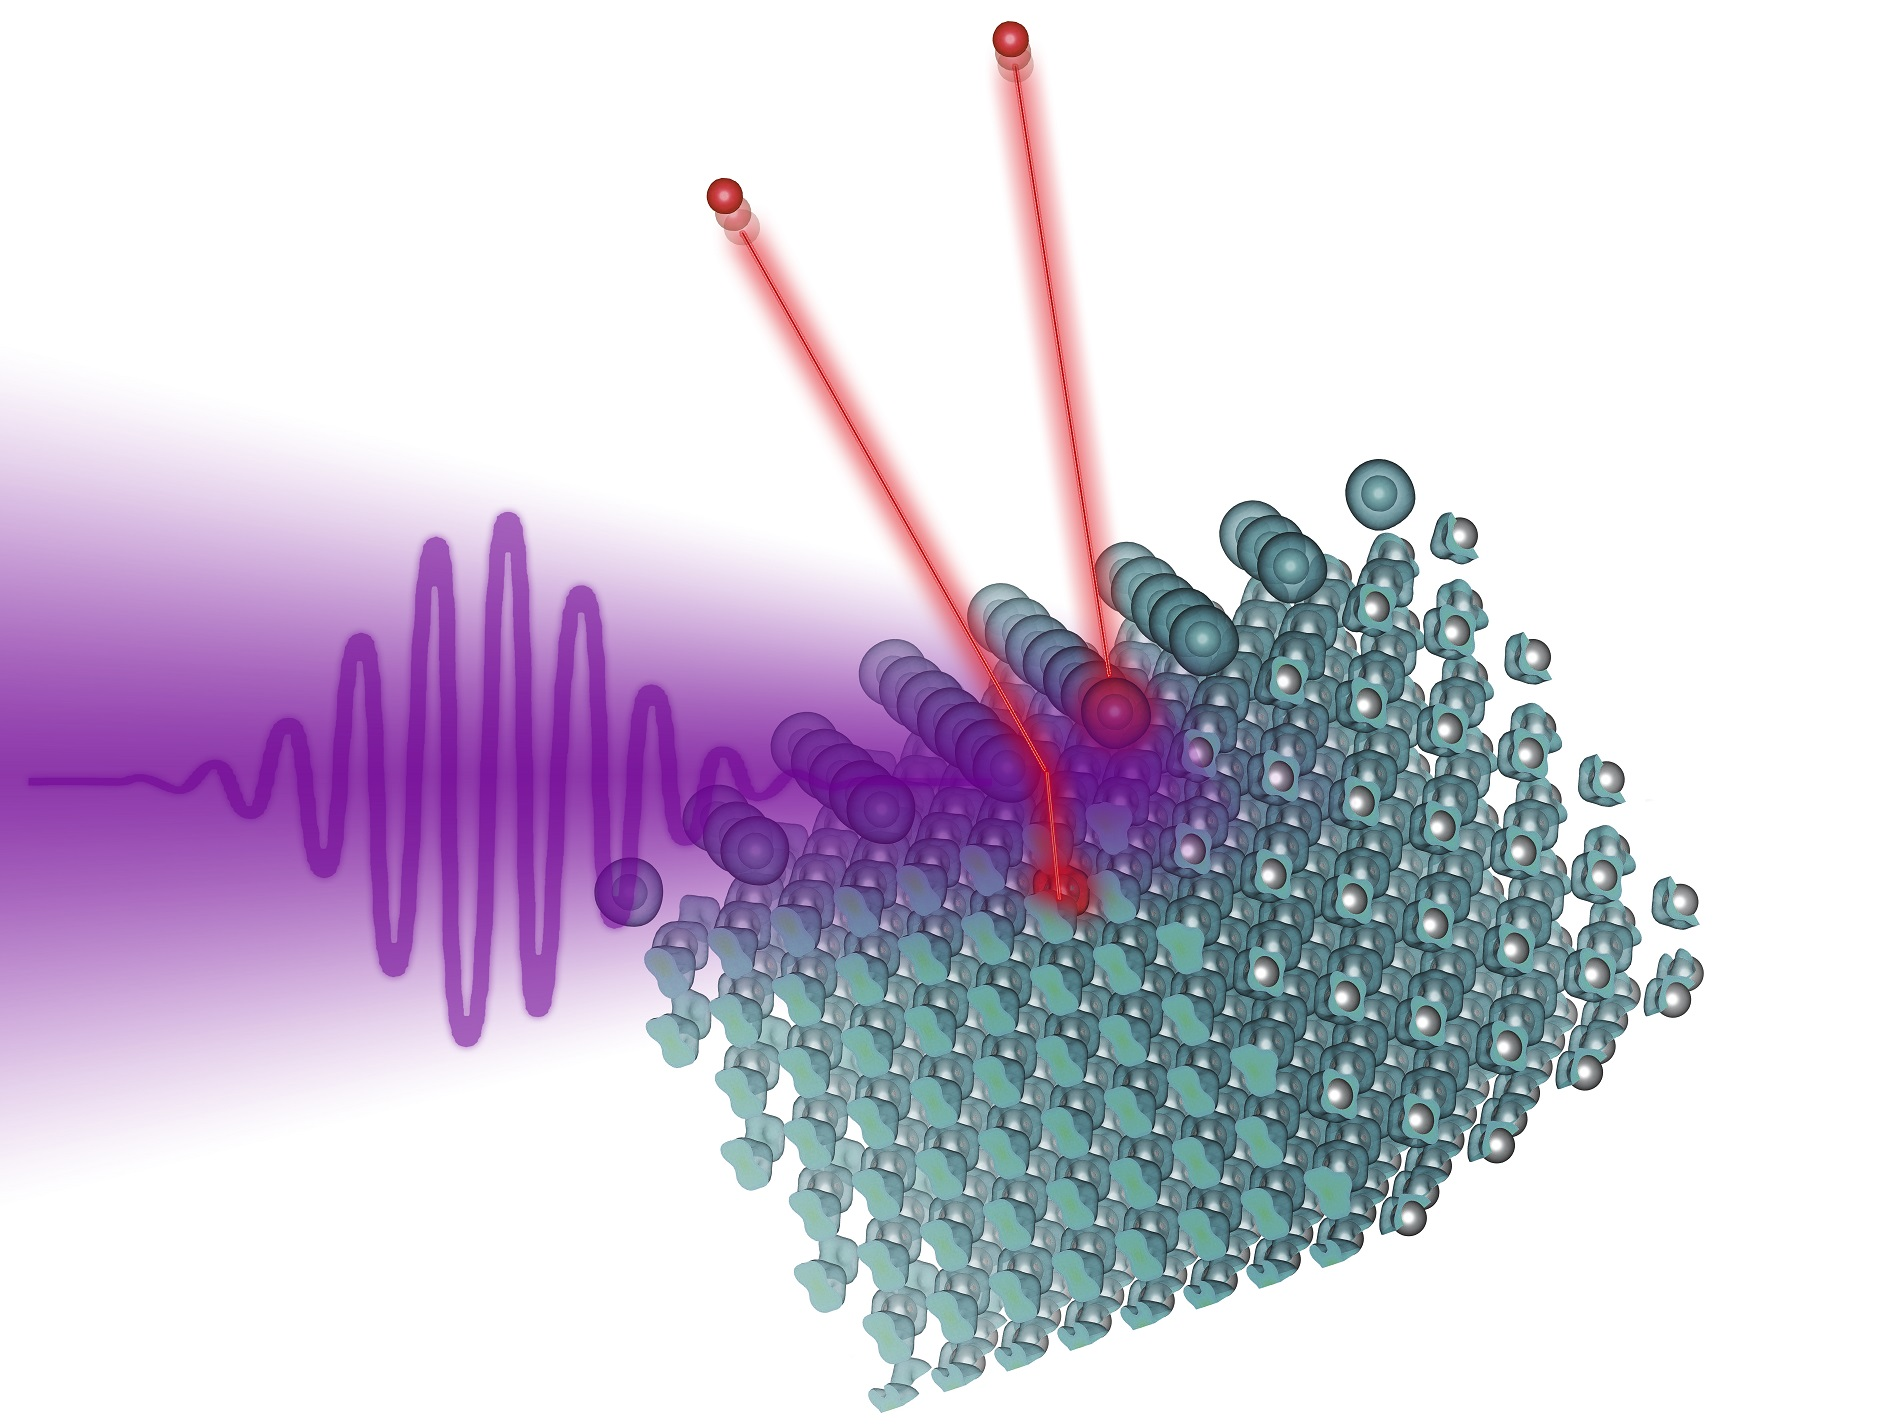 A laser pulse hits a tungsten surface on which iodine atoms have been depositied. Both the tungsten atoms and the iodine atoms lose electrons, which can then be measured.